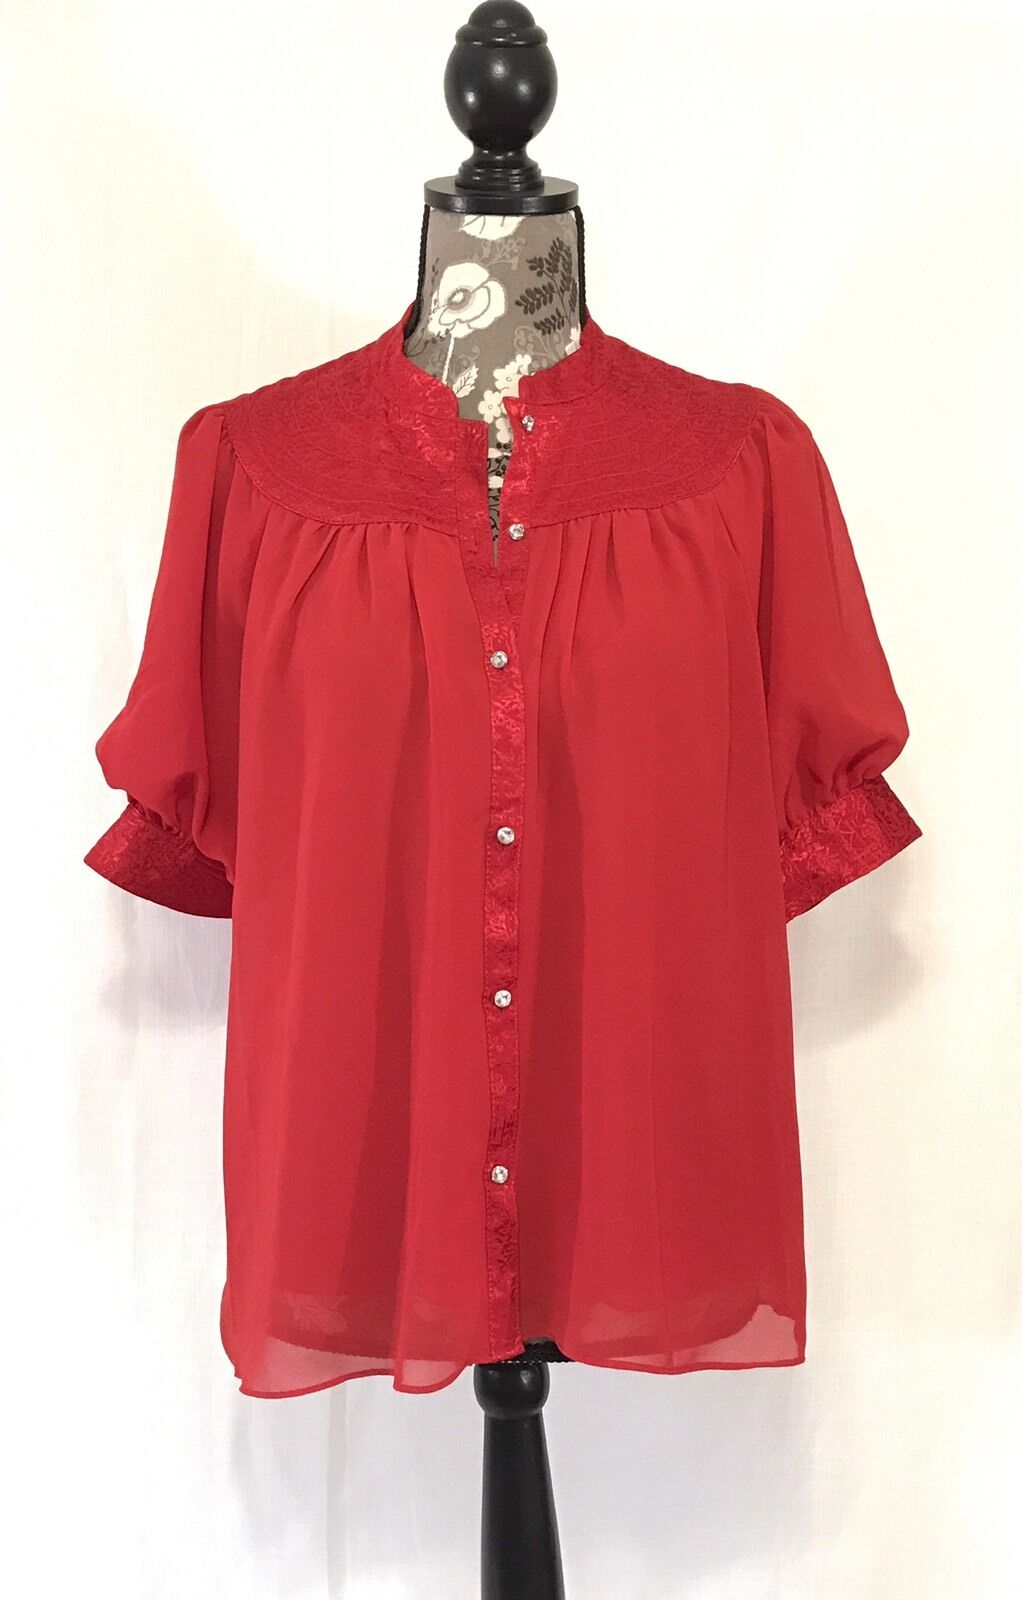 Moulinette Soeurs Anthropologie rot Short Sleeve Button Front Blouse NWOT New